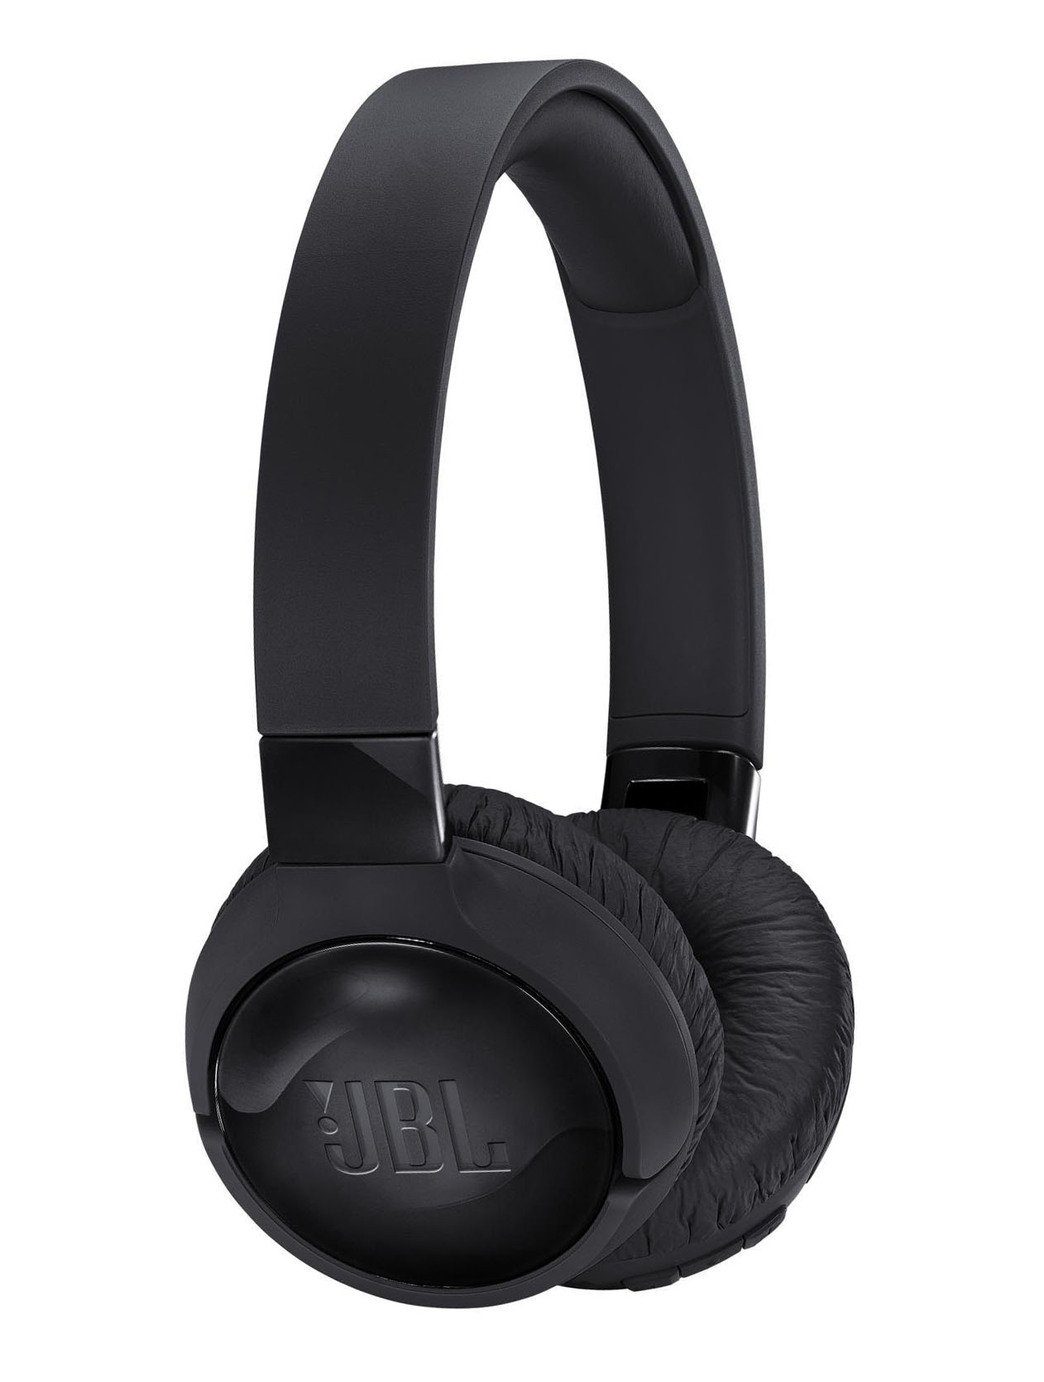 JBL Tune 660 On-Ear Wireless Headphones - Black